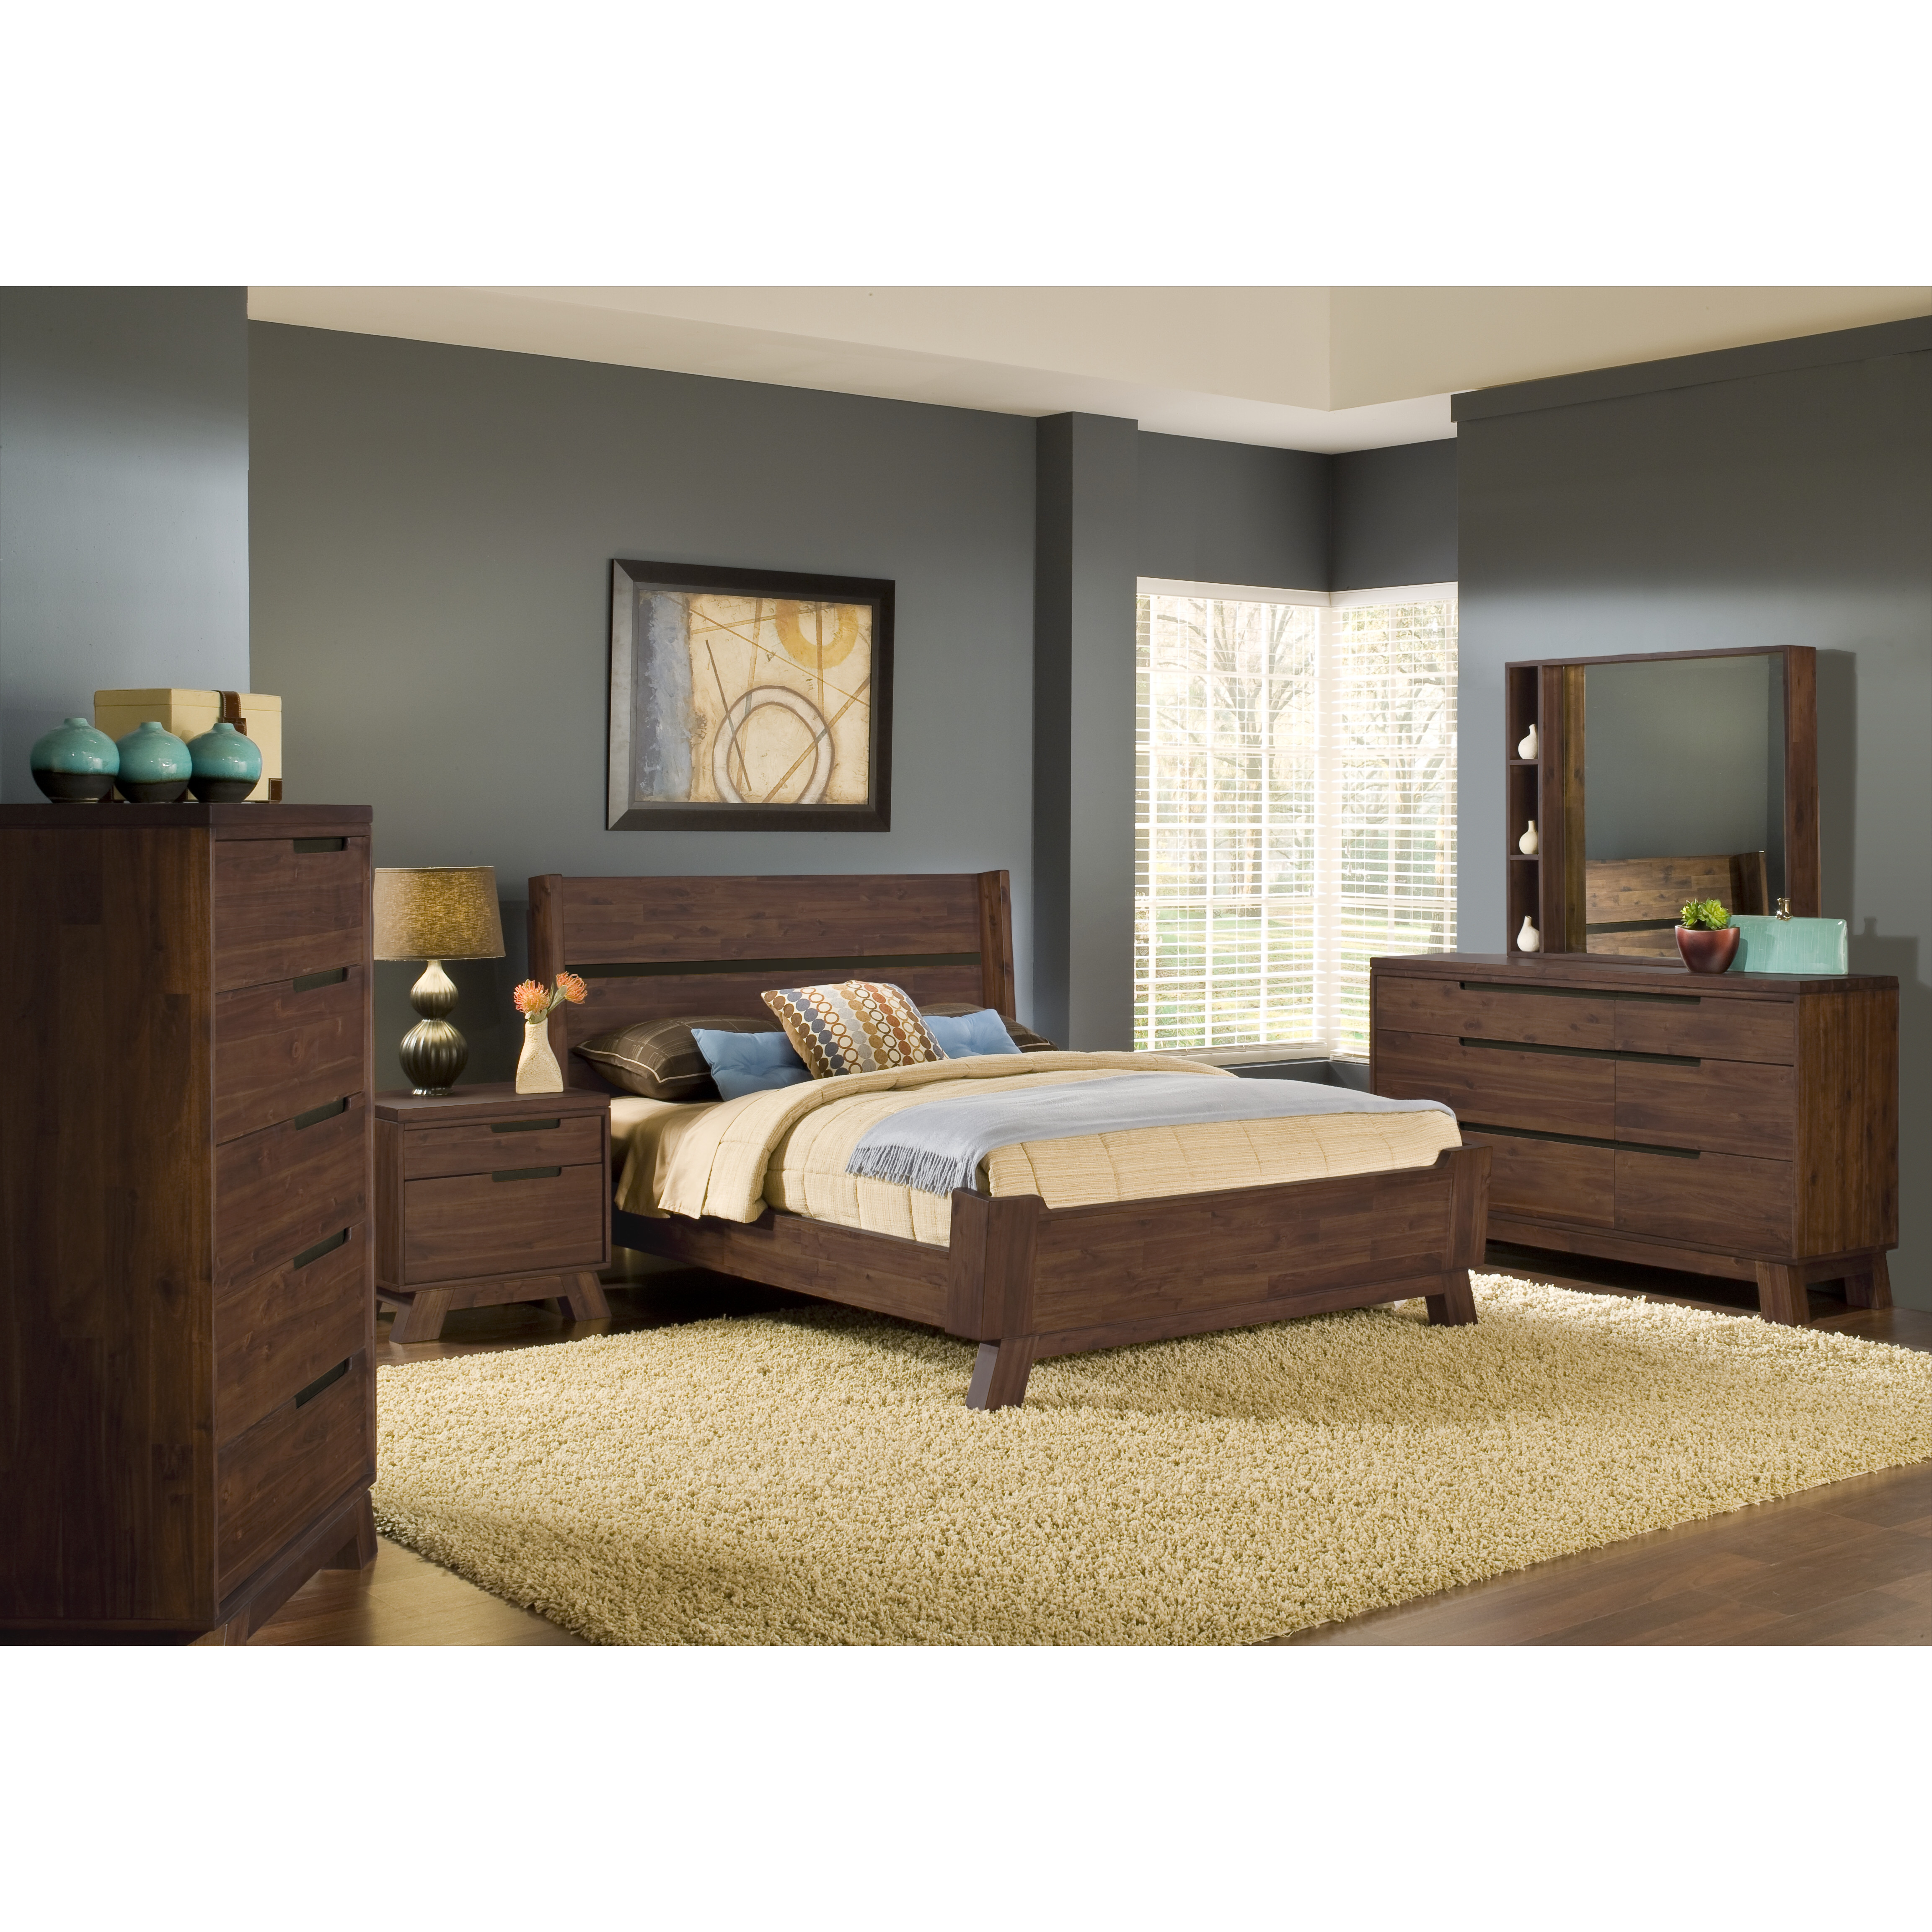 Modus portland bedroom collection broadway furniture for Furniture collection